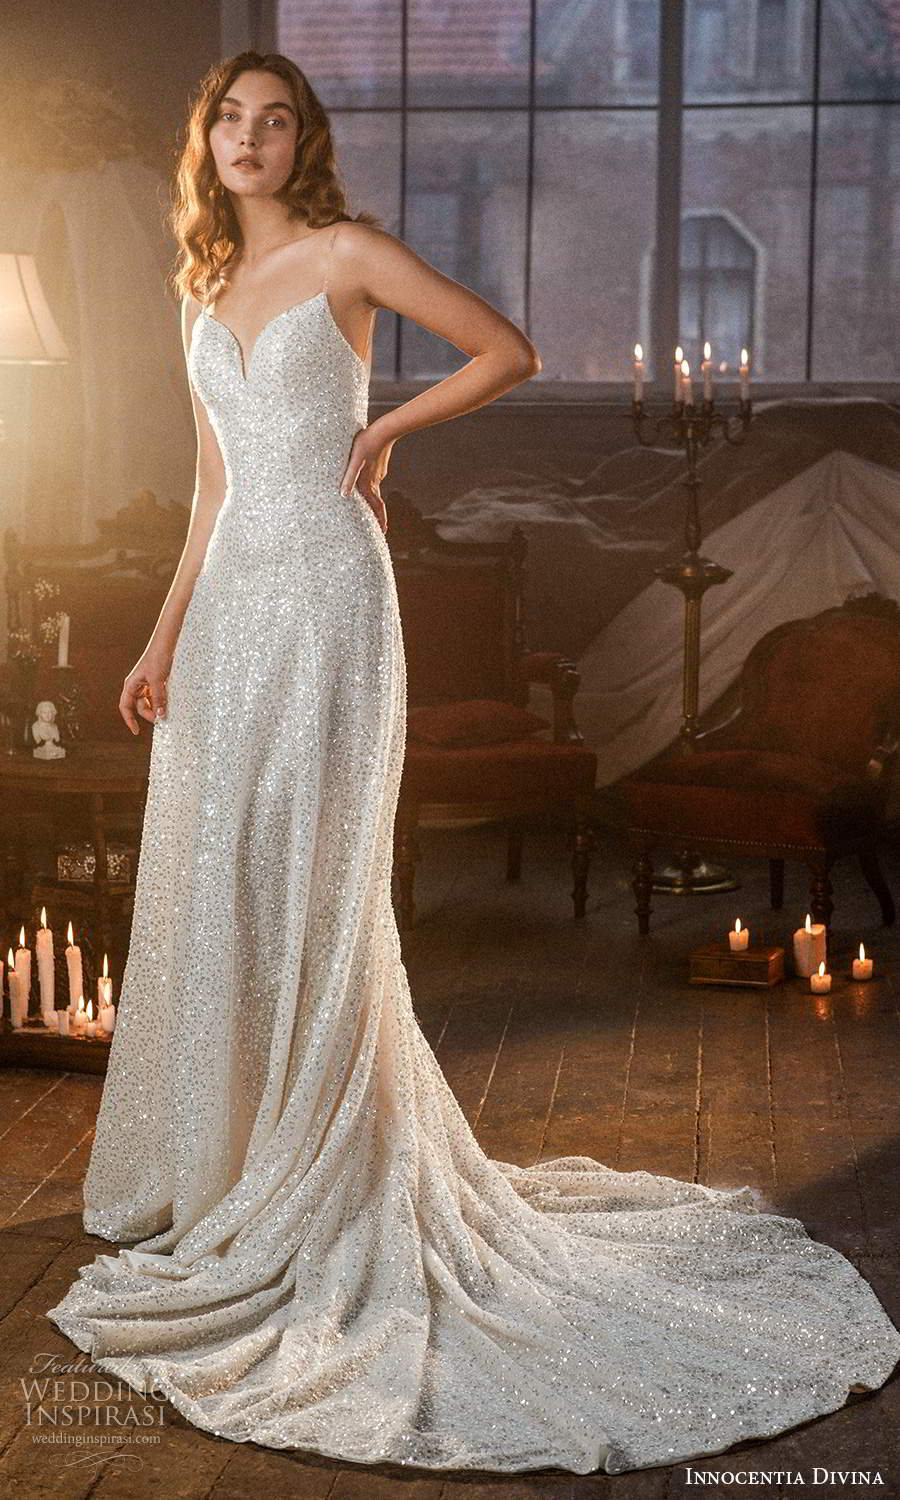 innocentia divina 2021 bridal sleeveless thin straps sweetheart neckline fully embellished a line wedding dress chapel train (5) mv